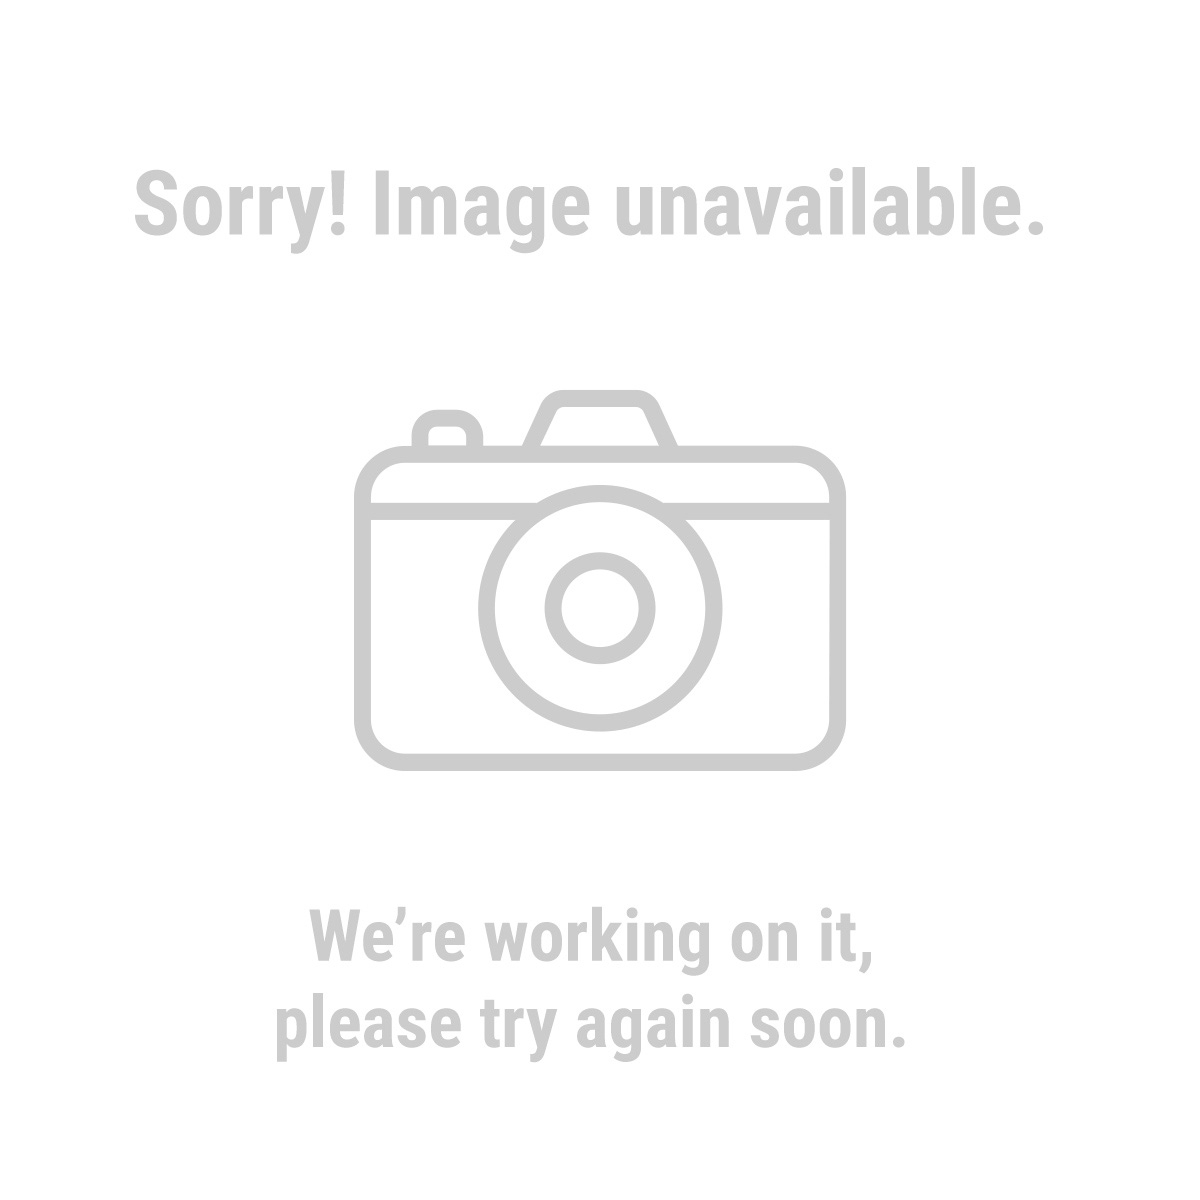 Central Pneumatic 1108 Air Needle Scaler